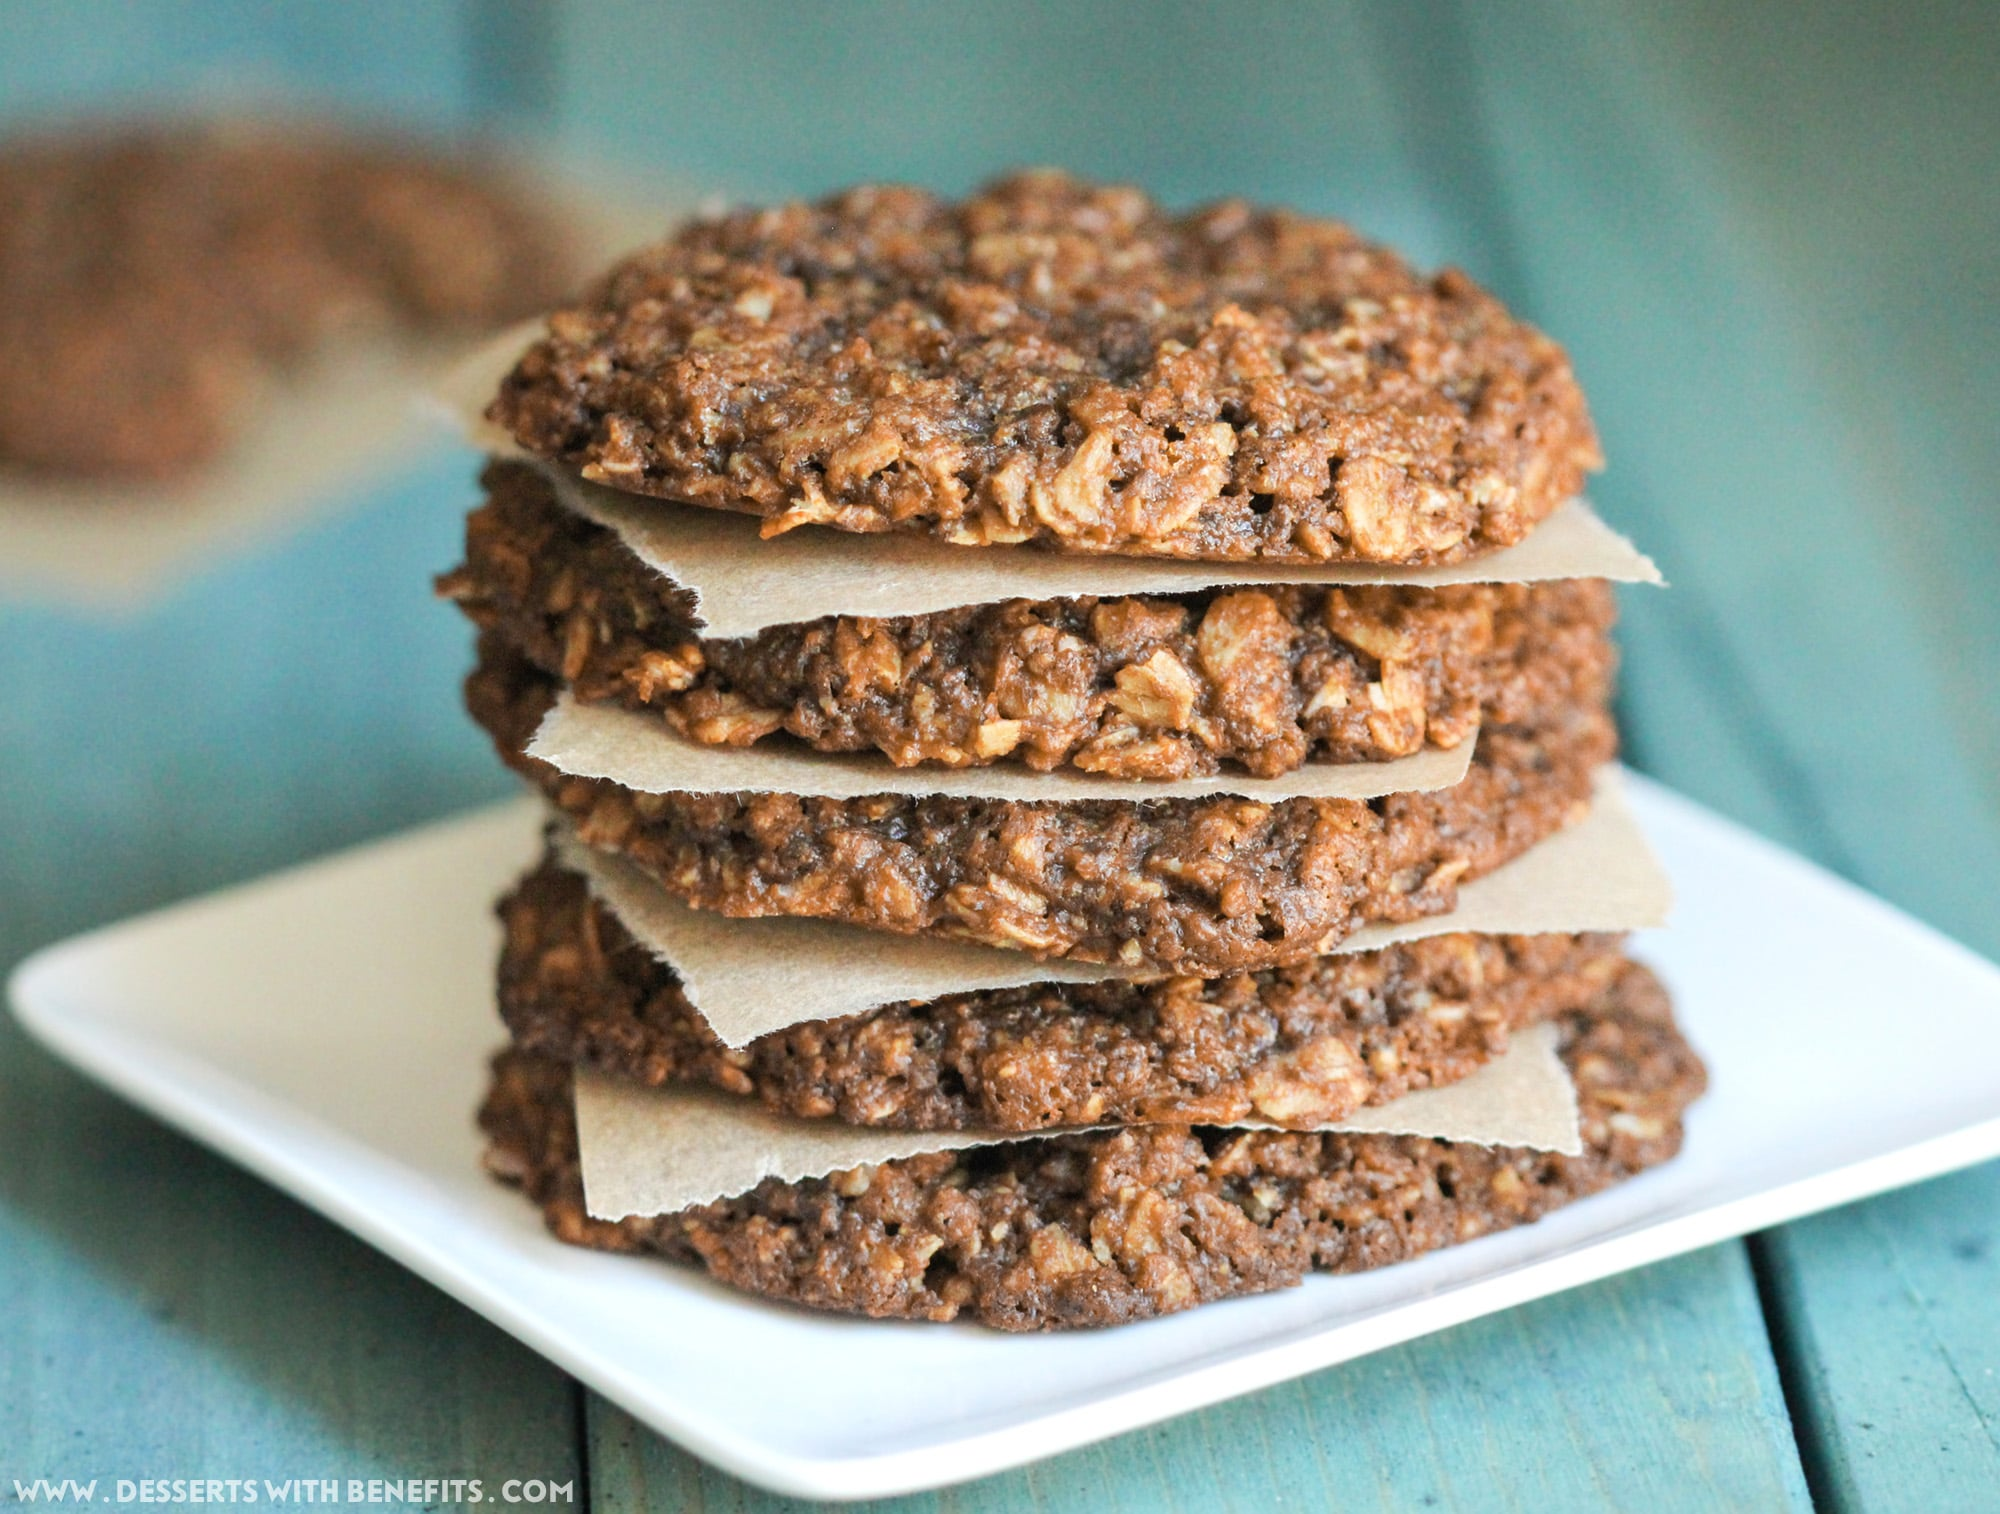 Healthy Chewy Peanut Butter Oatmeal Cookies recipe! These secretly guilt-free cookies are refined sugar free, gluten free, dairy free, eggless, and vegan, but you would never ever EVER suspect it! Healthy Dessert Recipes at Desserts with Benefits